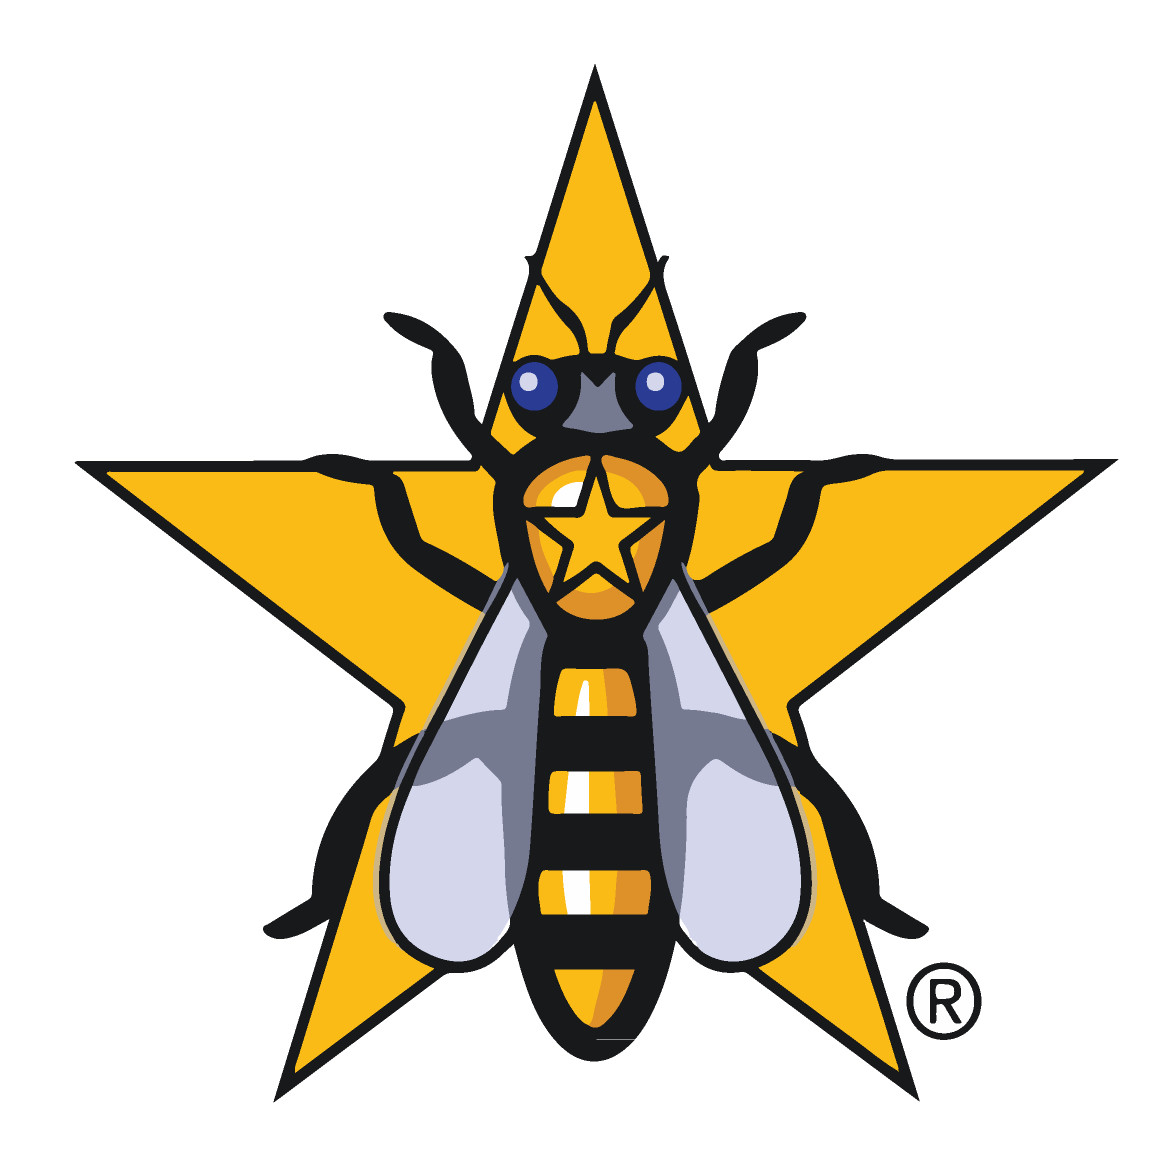 Why is this company called Gold Star Honeybees?